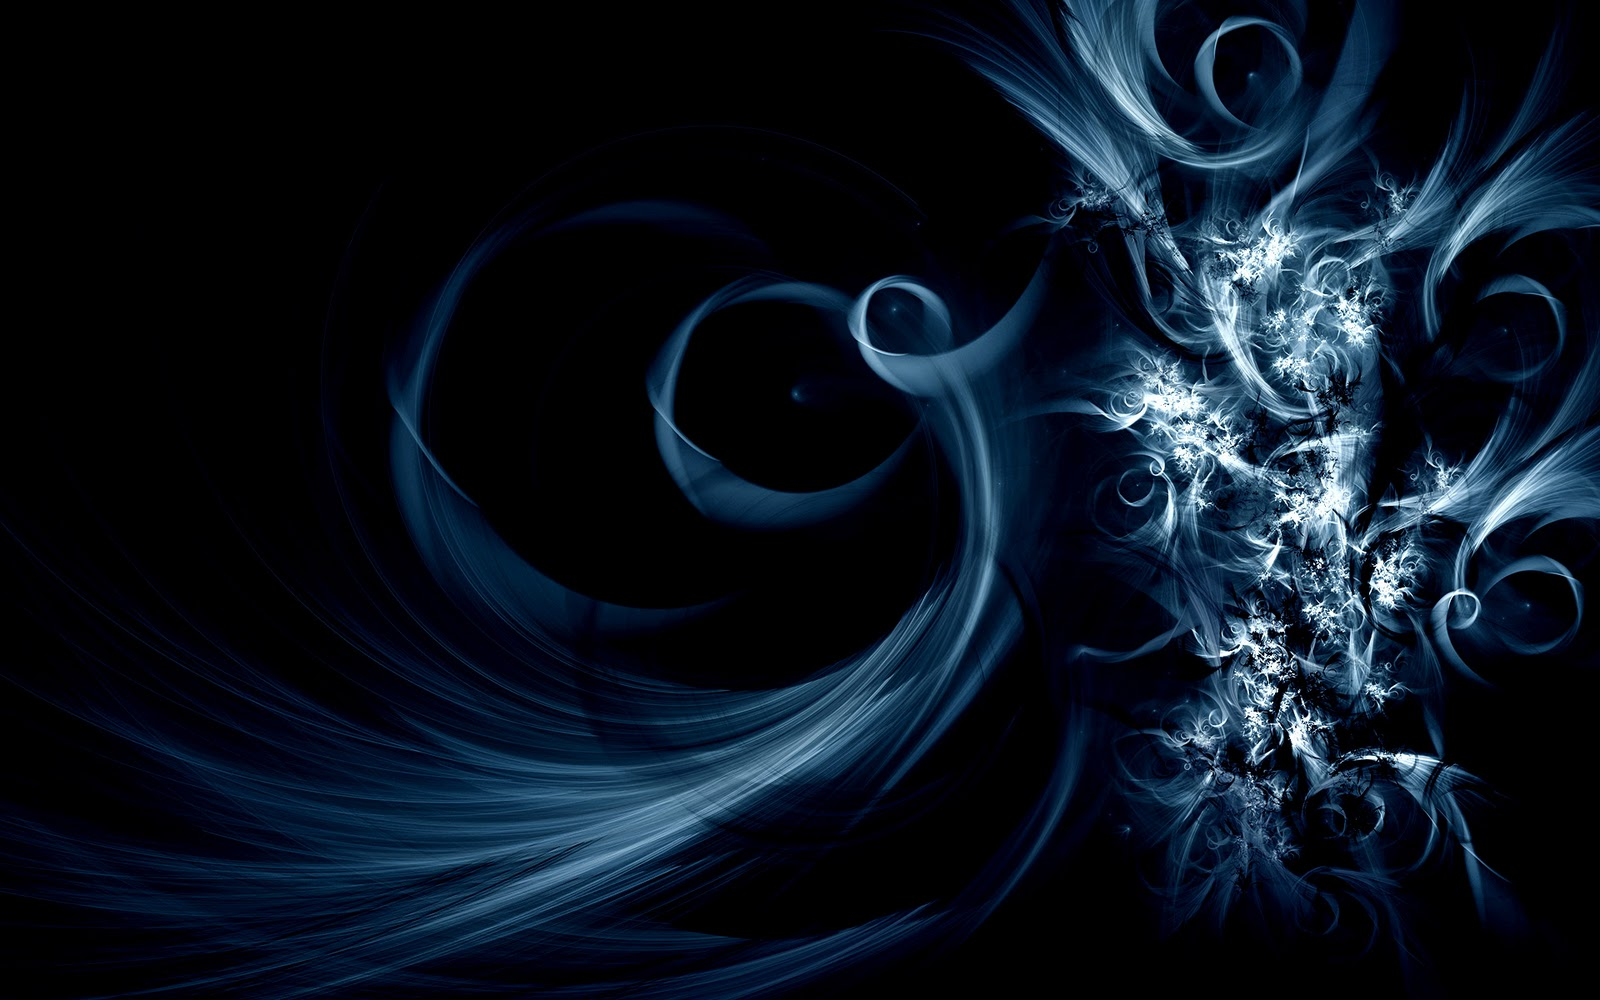 http://2.bp.blogspot.com/-EmfzLSpUz8Y/TpXK94a9cgI/AAAAAAAAB2E/FdJUC2-3A78/s1600/3D-Abstract-Wallpaper-3.jpg